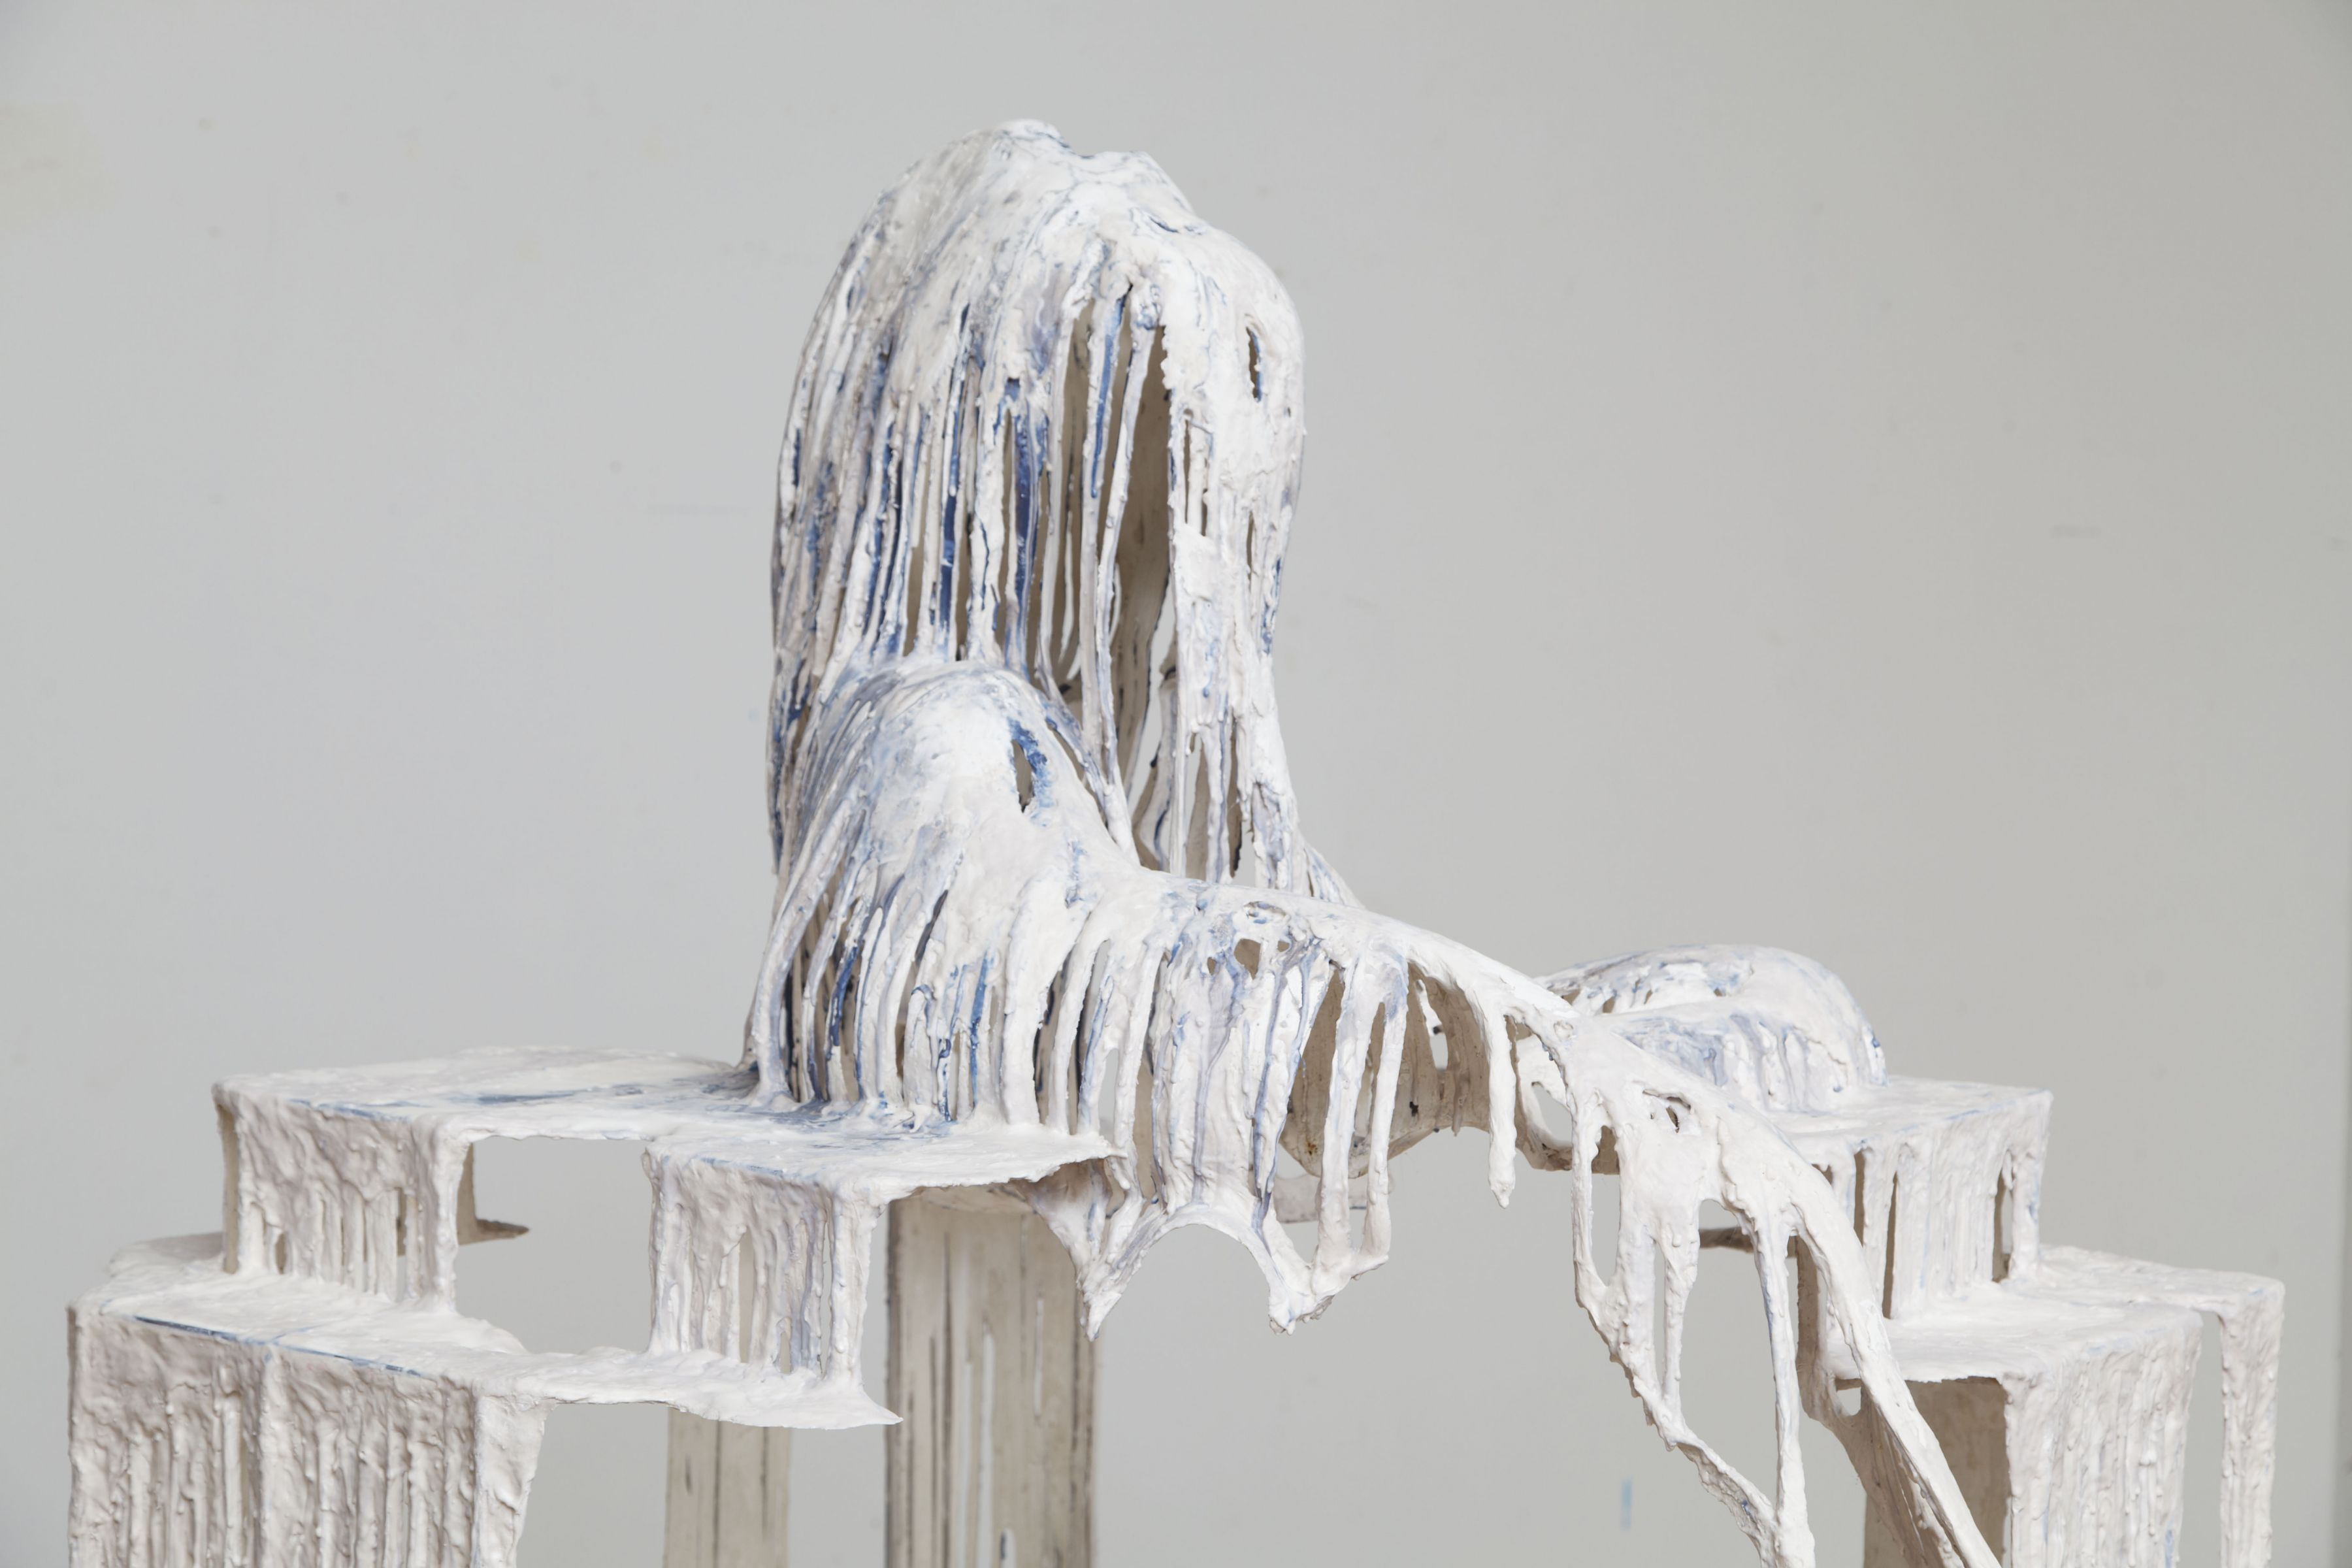 a detail of a white drip sculpture by the artist Diana Al-Hadid available for purchase